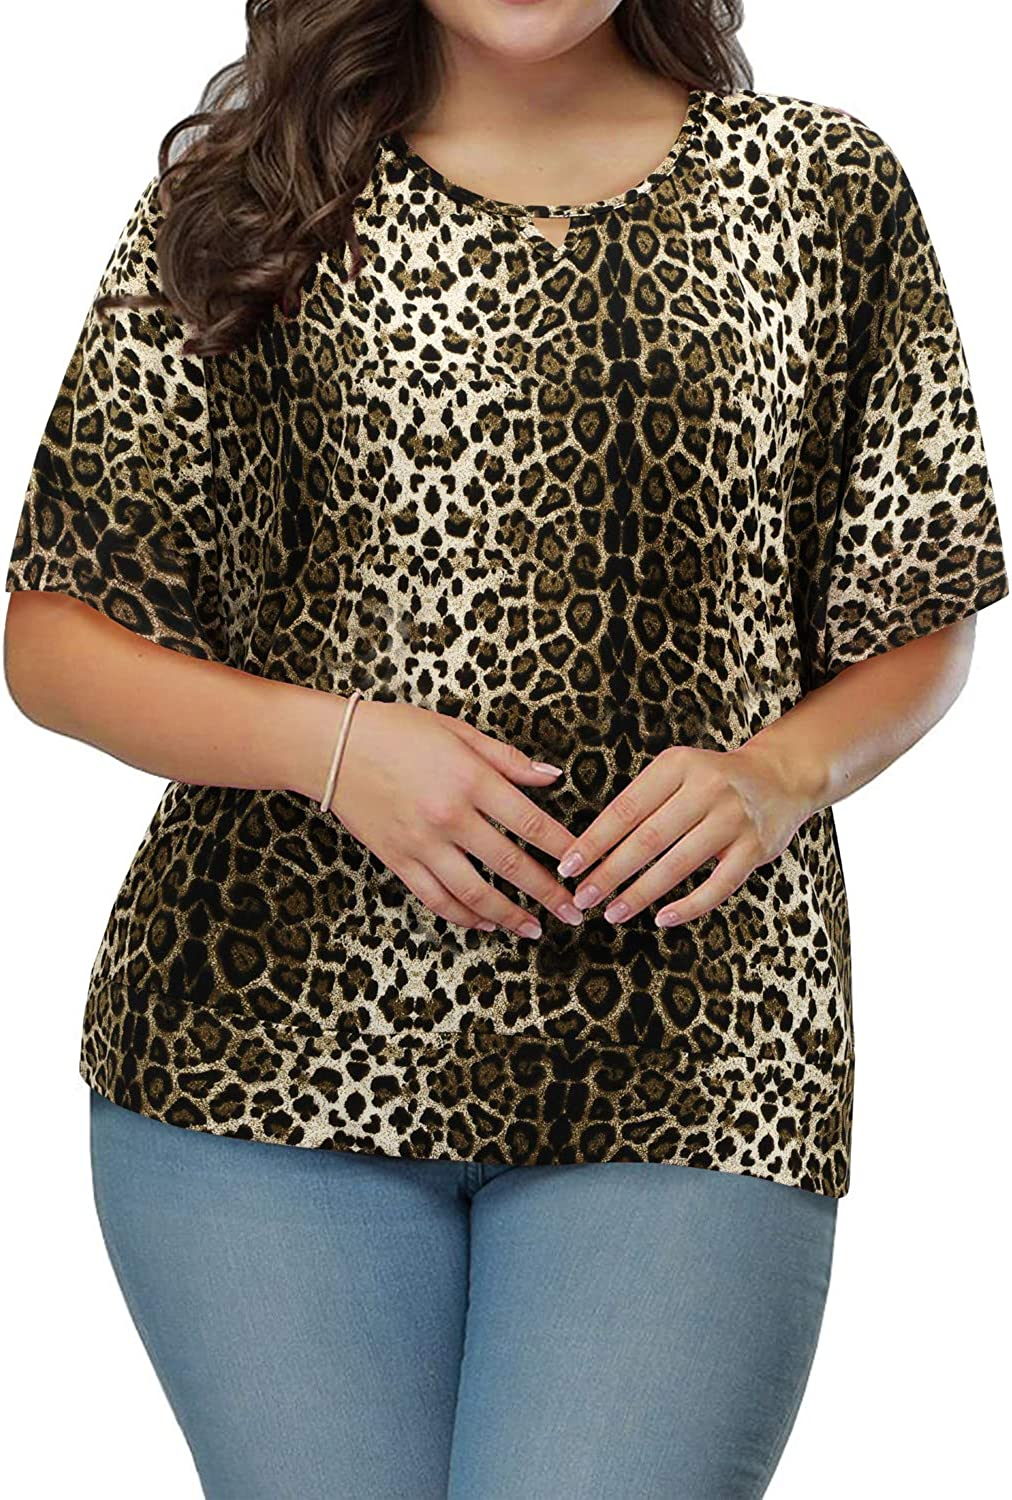 ULTRANICE Women's Summer Plus Size Cold Shoulder Crewneck Tops Casual Short Batwing Sleeve T Shirts